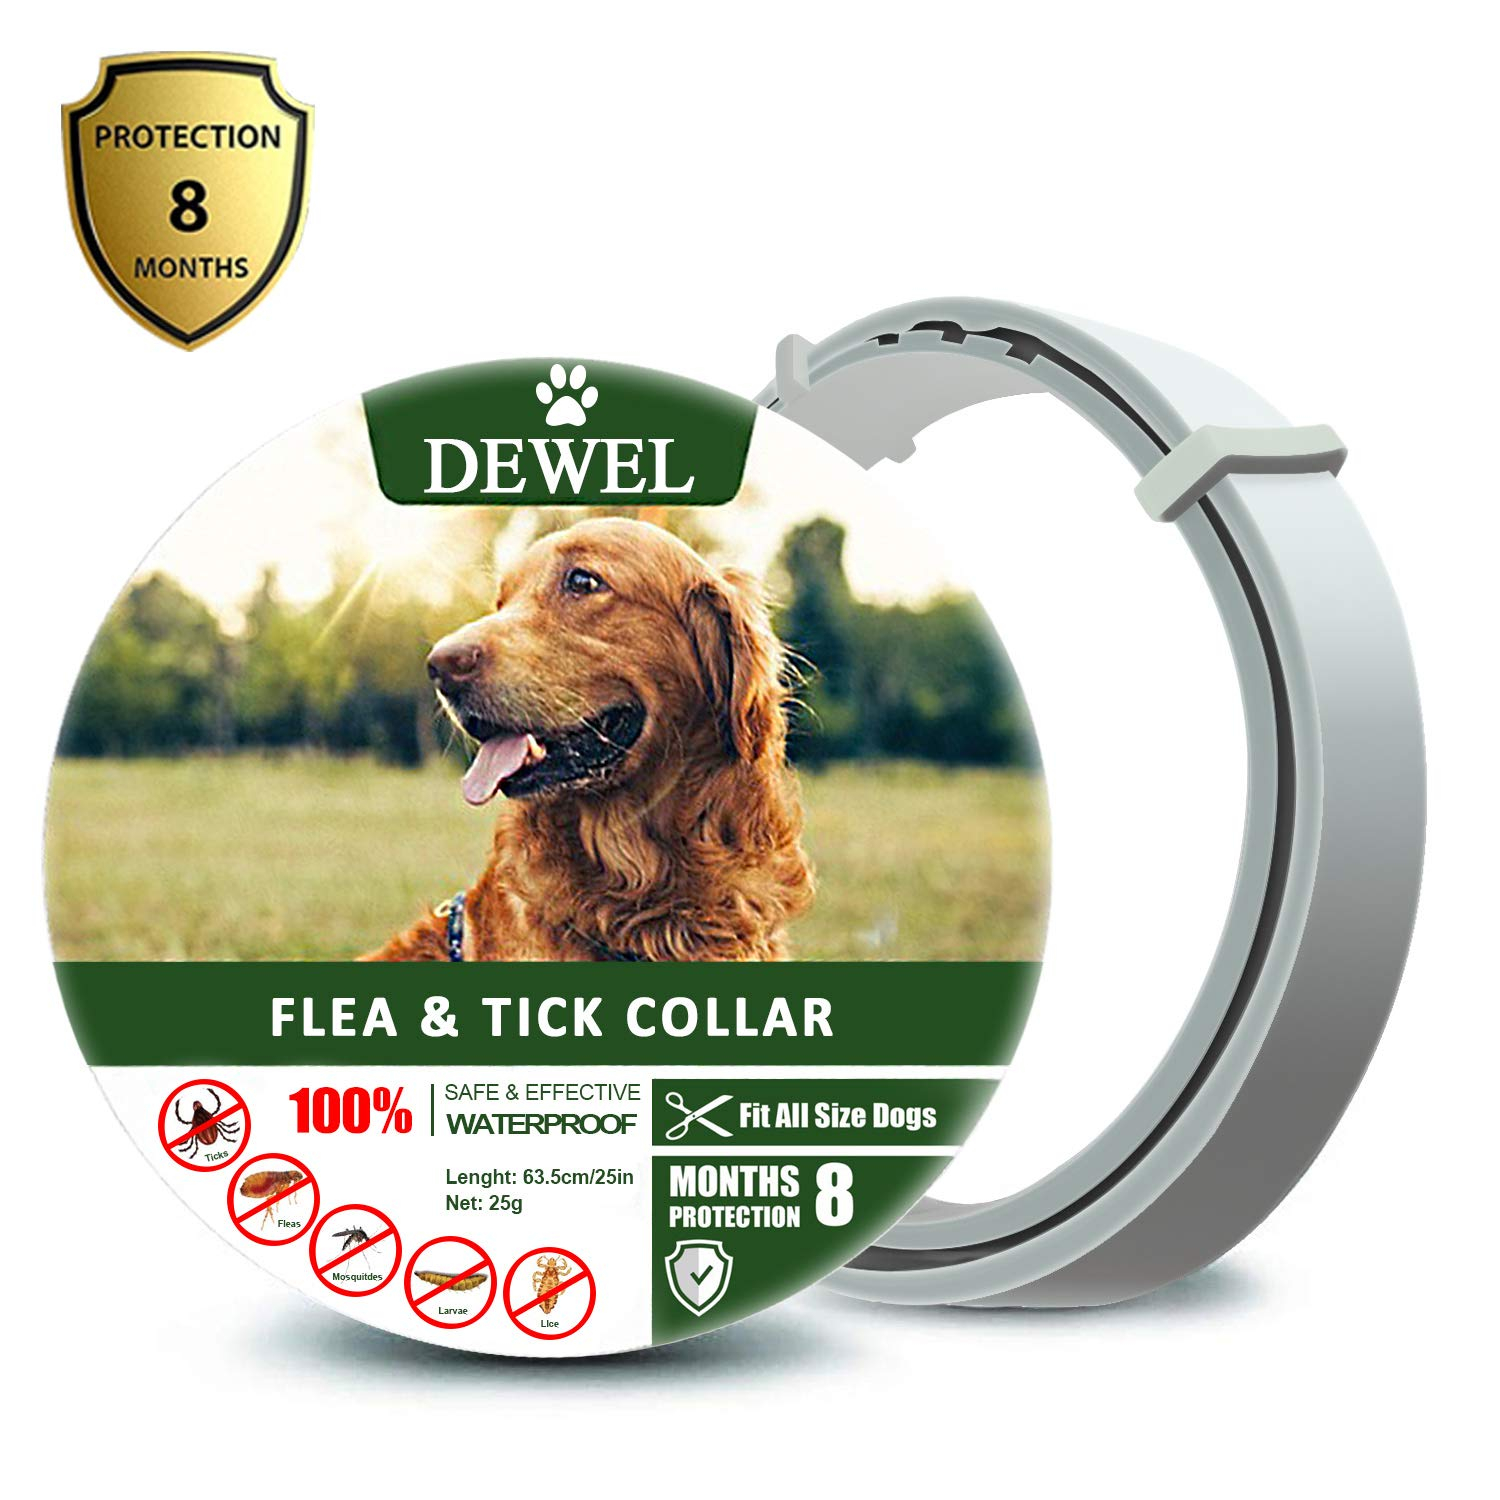 Fedciory Flea and Tick Prevention Collar for Dogs Up to 8 Months Protection Hypoallergenic and Waterproof Flea & Tick Control Adjustable Size Fits All Large Medium and Small Dog, Gray